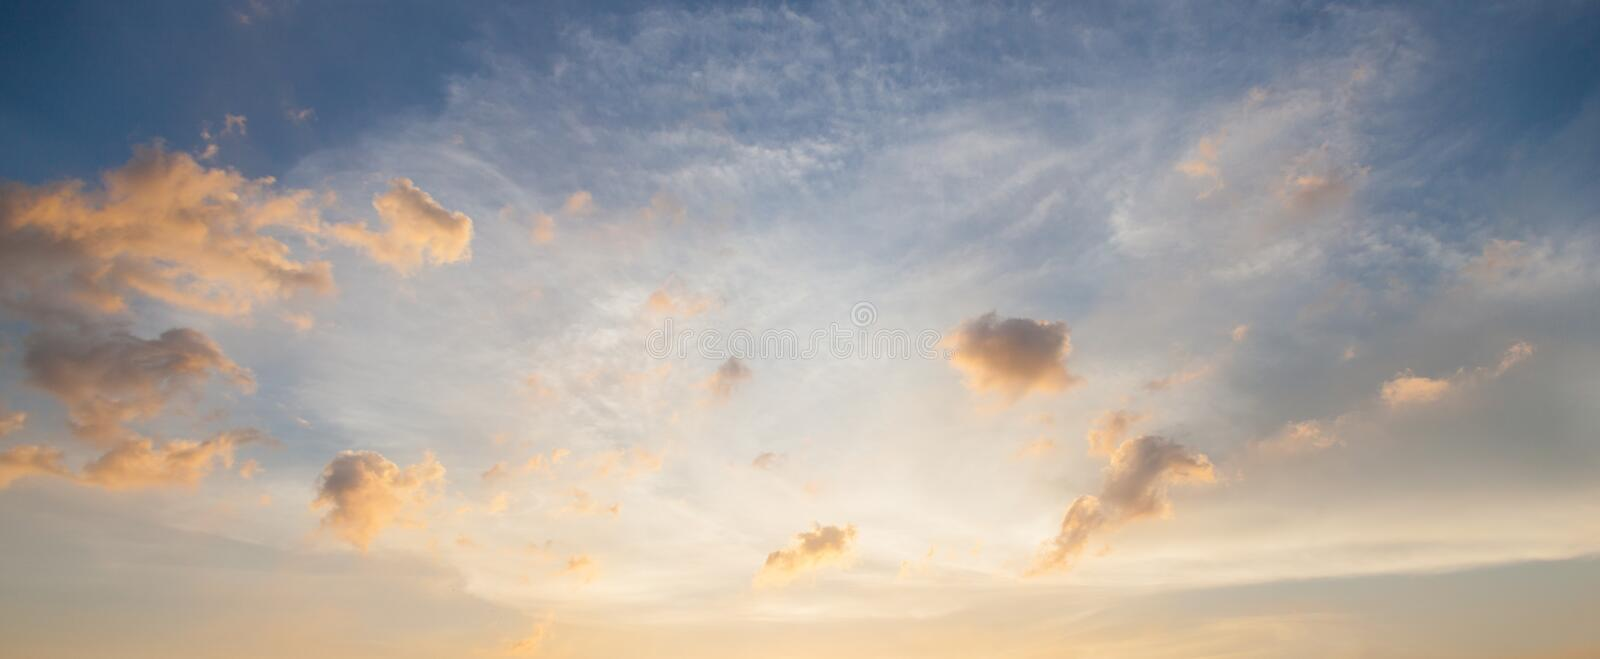 Clouds and sky in the evening. royalty free stock photos